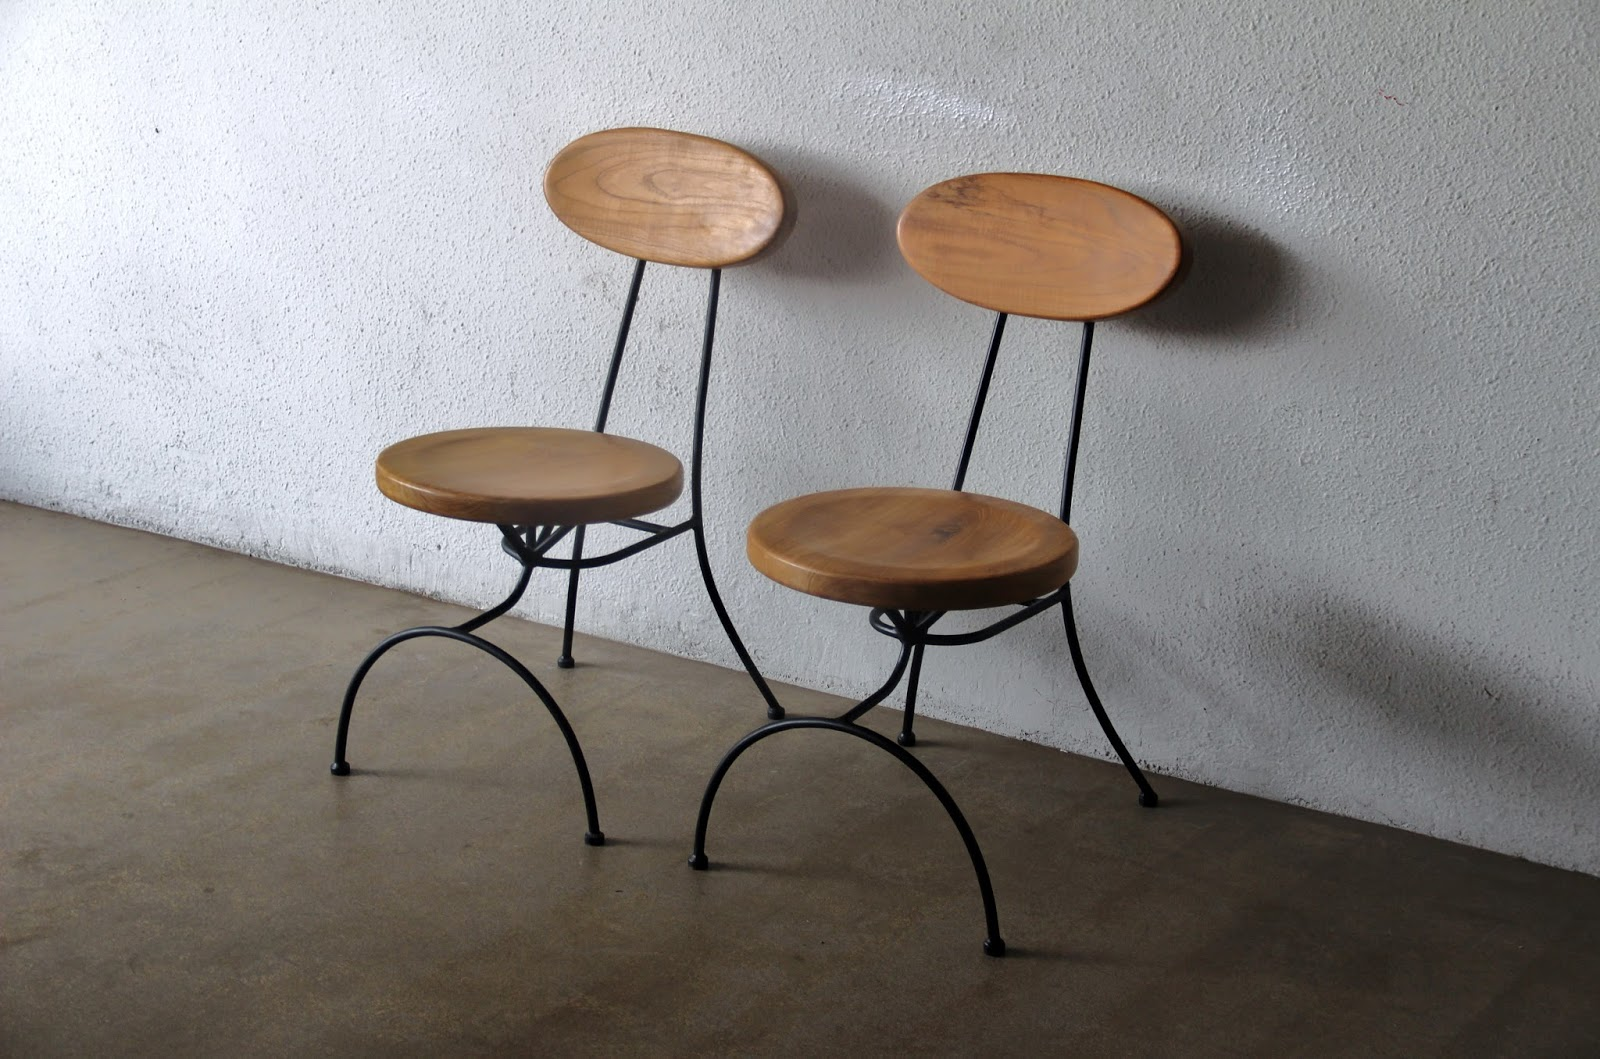 Wooden moon chairs - Second Charm Collections Combining Metal And Wood For That Industrial Look